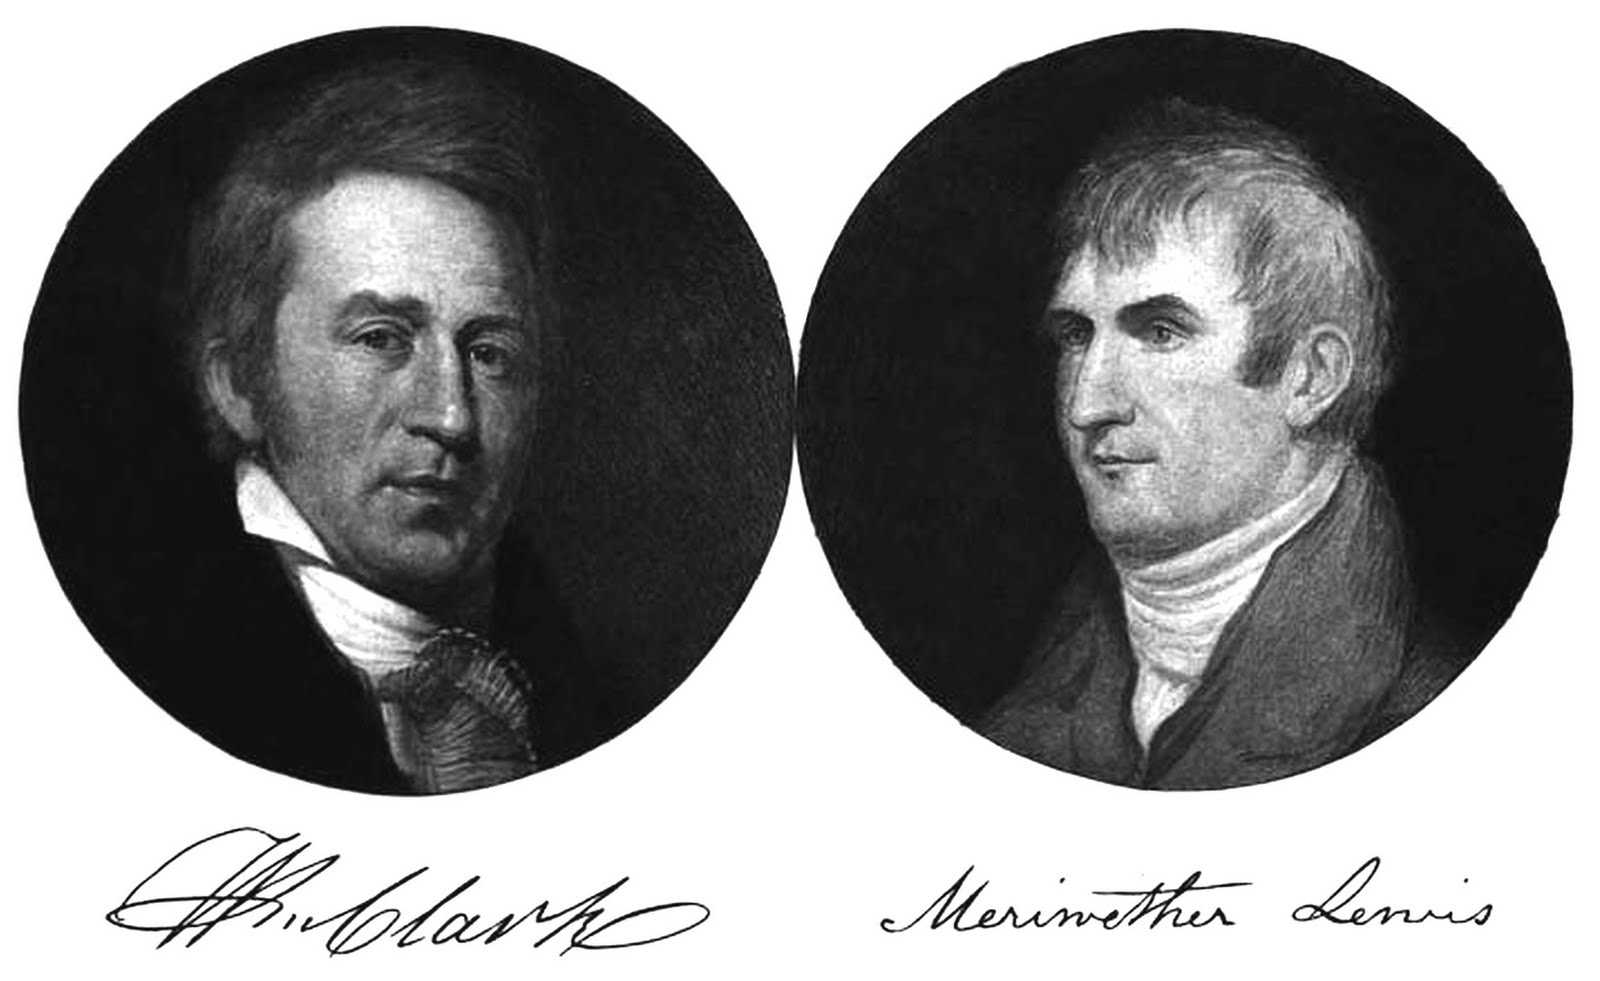 a history of the expedition of lewis and clark History of the expedition under the command of captains lewis and clark, vol i  : to the sources of the missouri, thence across the rocky mountains  ocean.